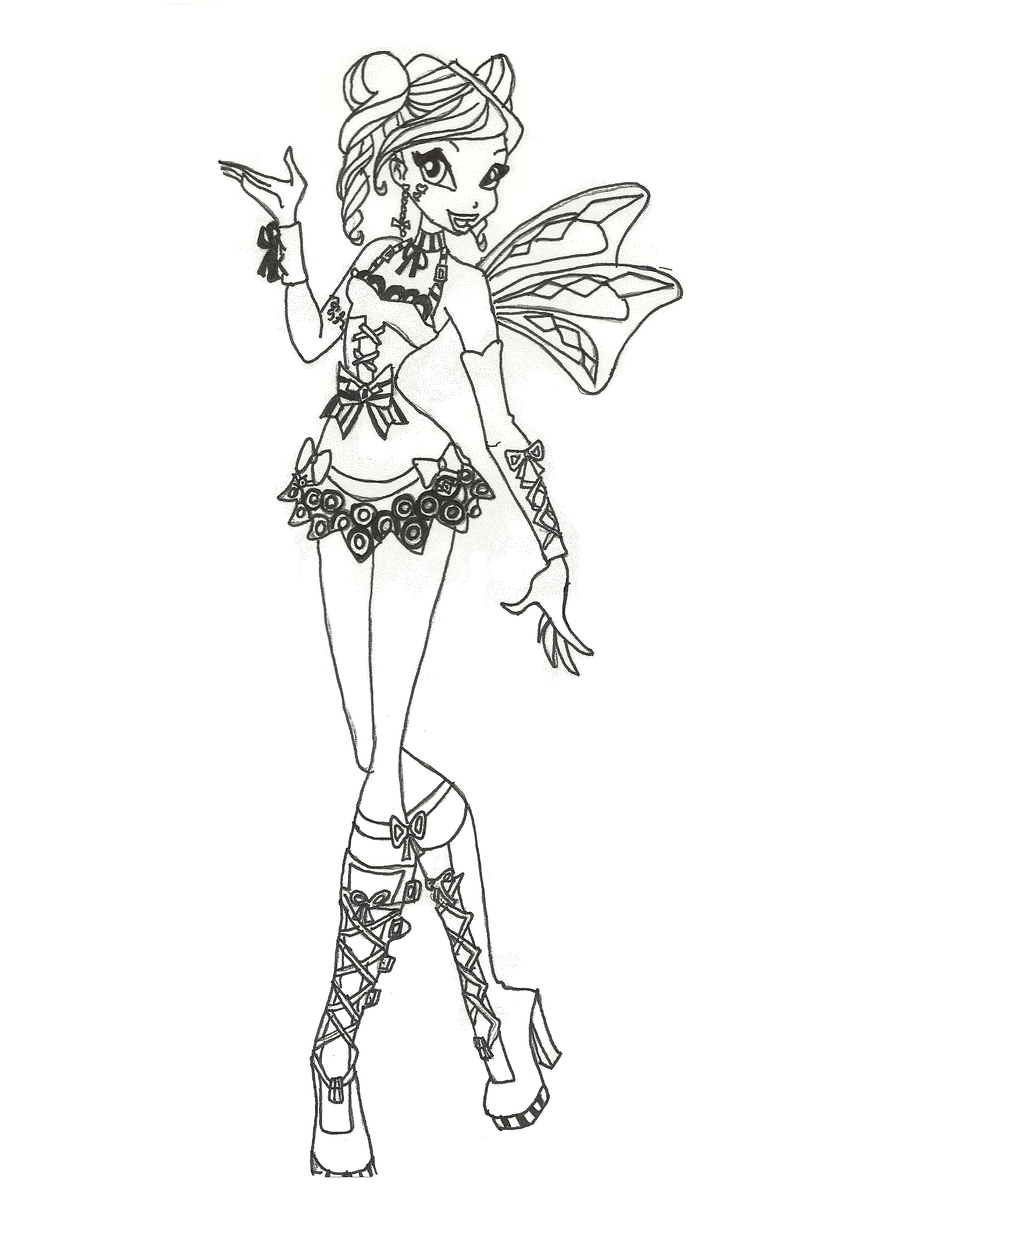 Hallowinx bloom coloring page by timefairy237 on deviantart for Bloom winx coloring pages